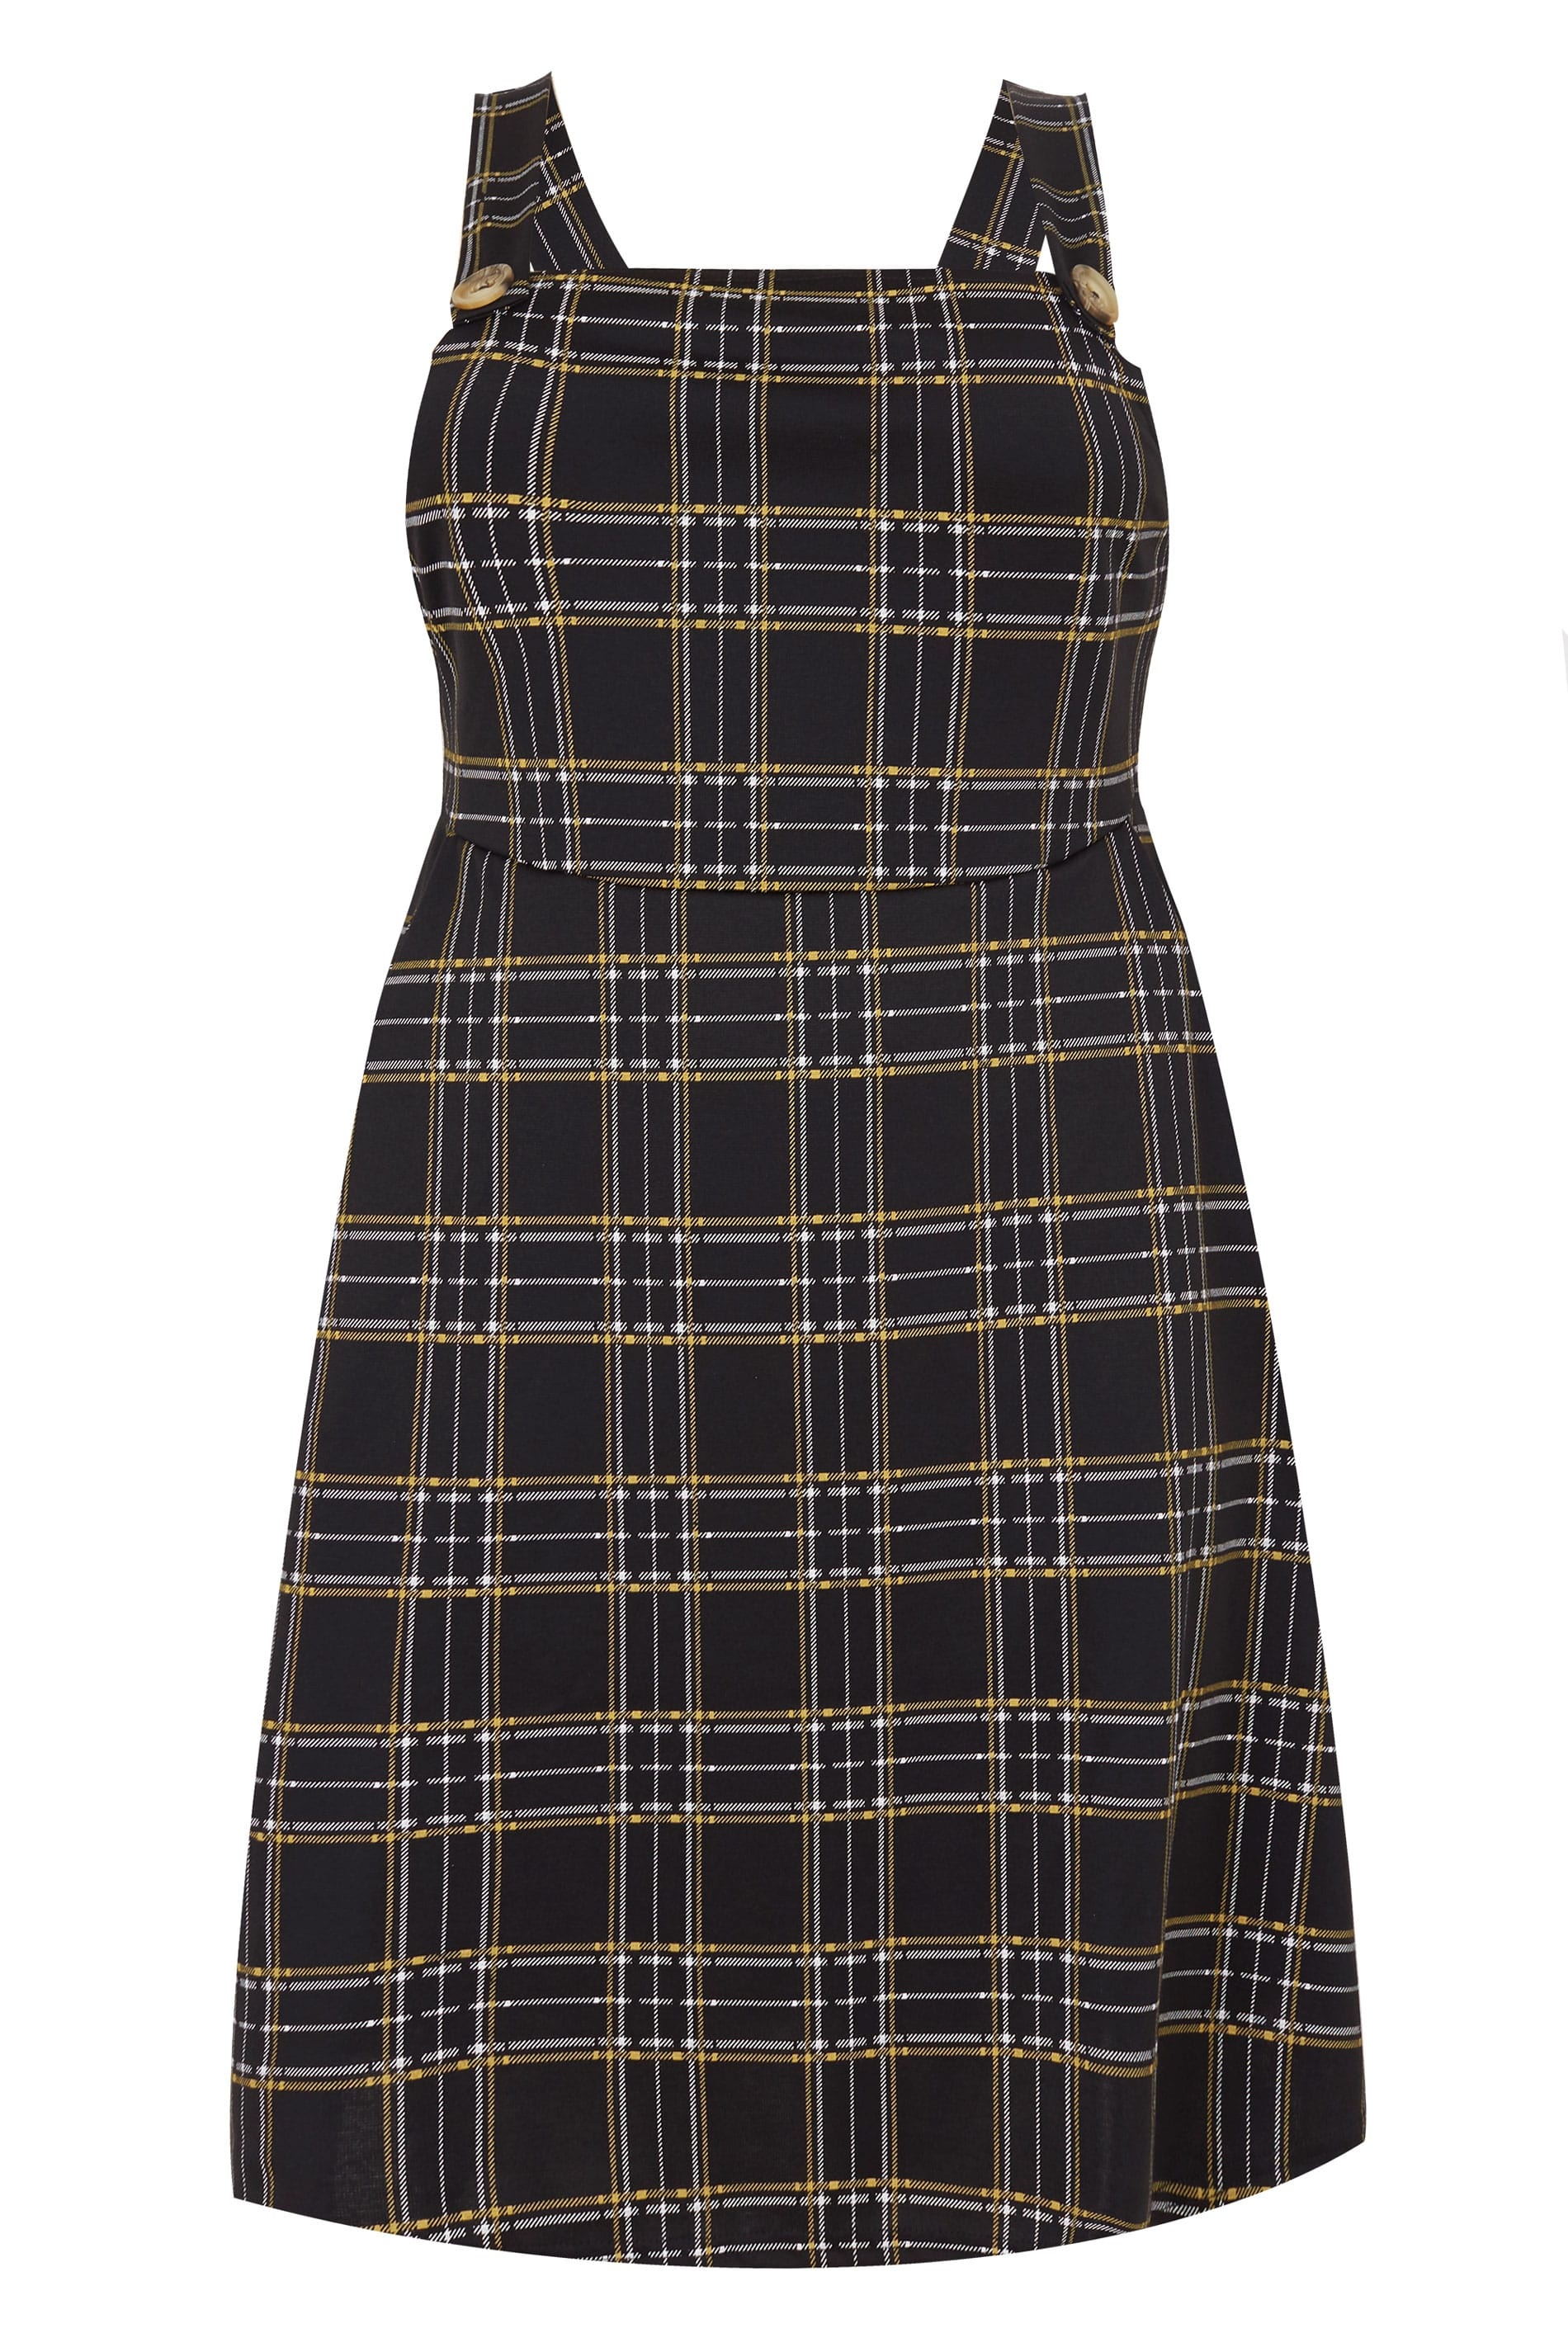 Collezione limitata Plus Size Black Yellow Check Pinafore-5830